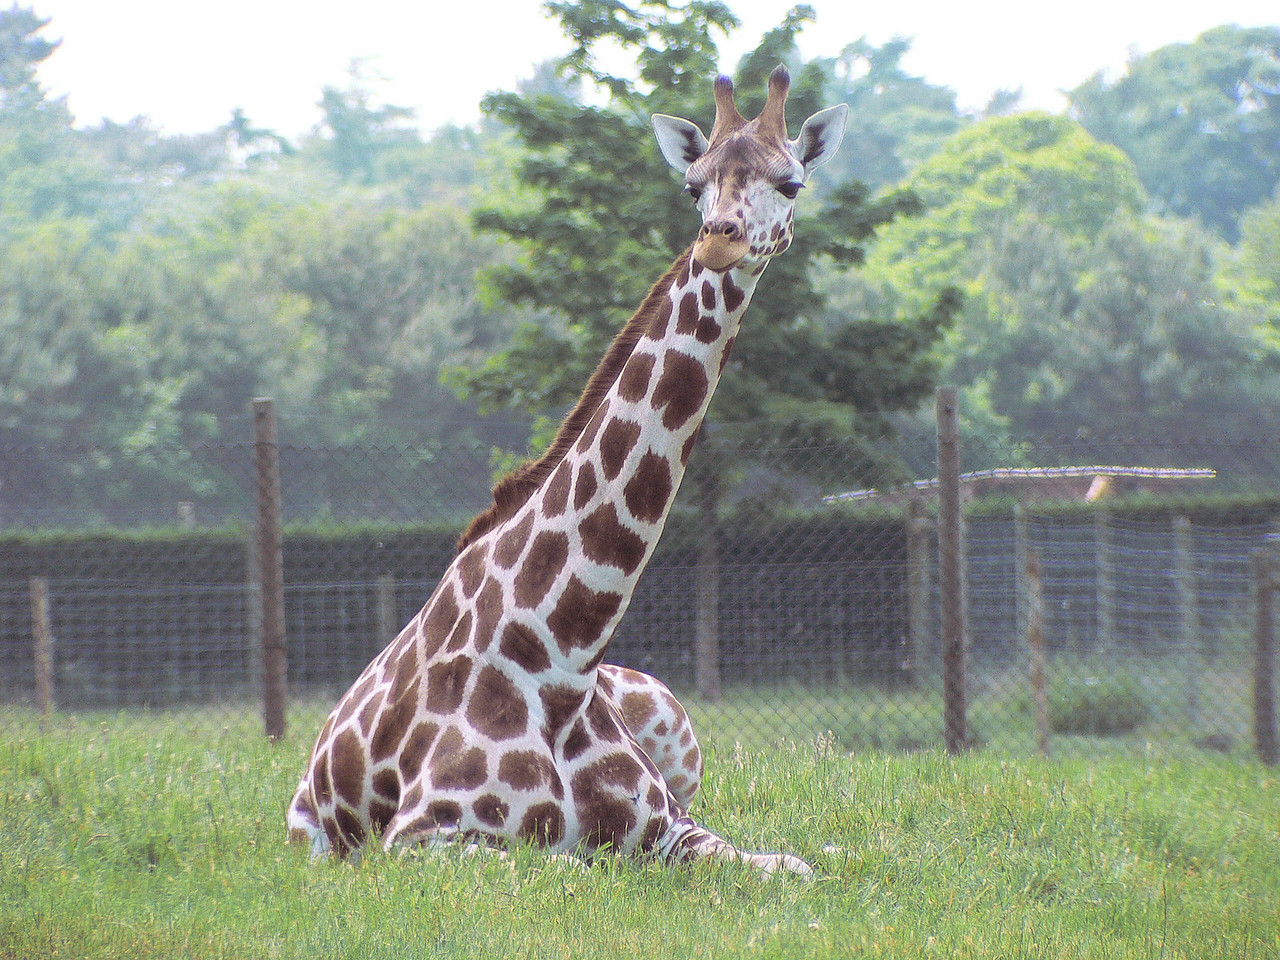 Giraffe at Whipsnade